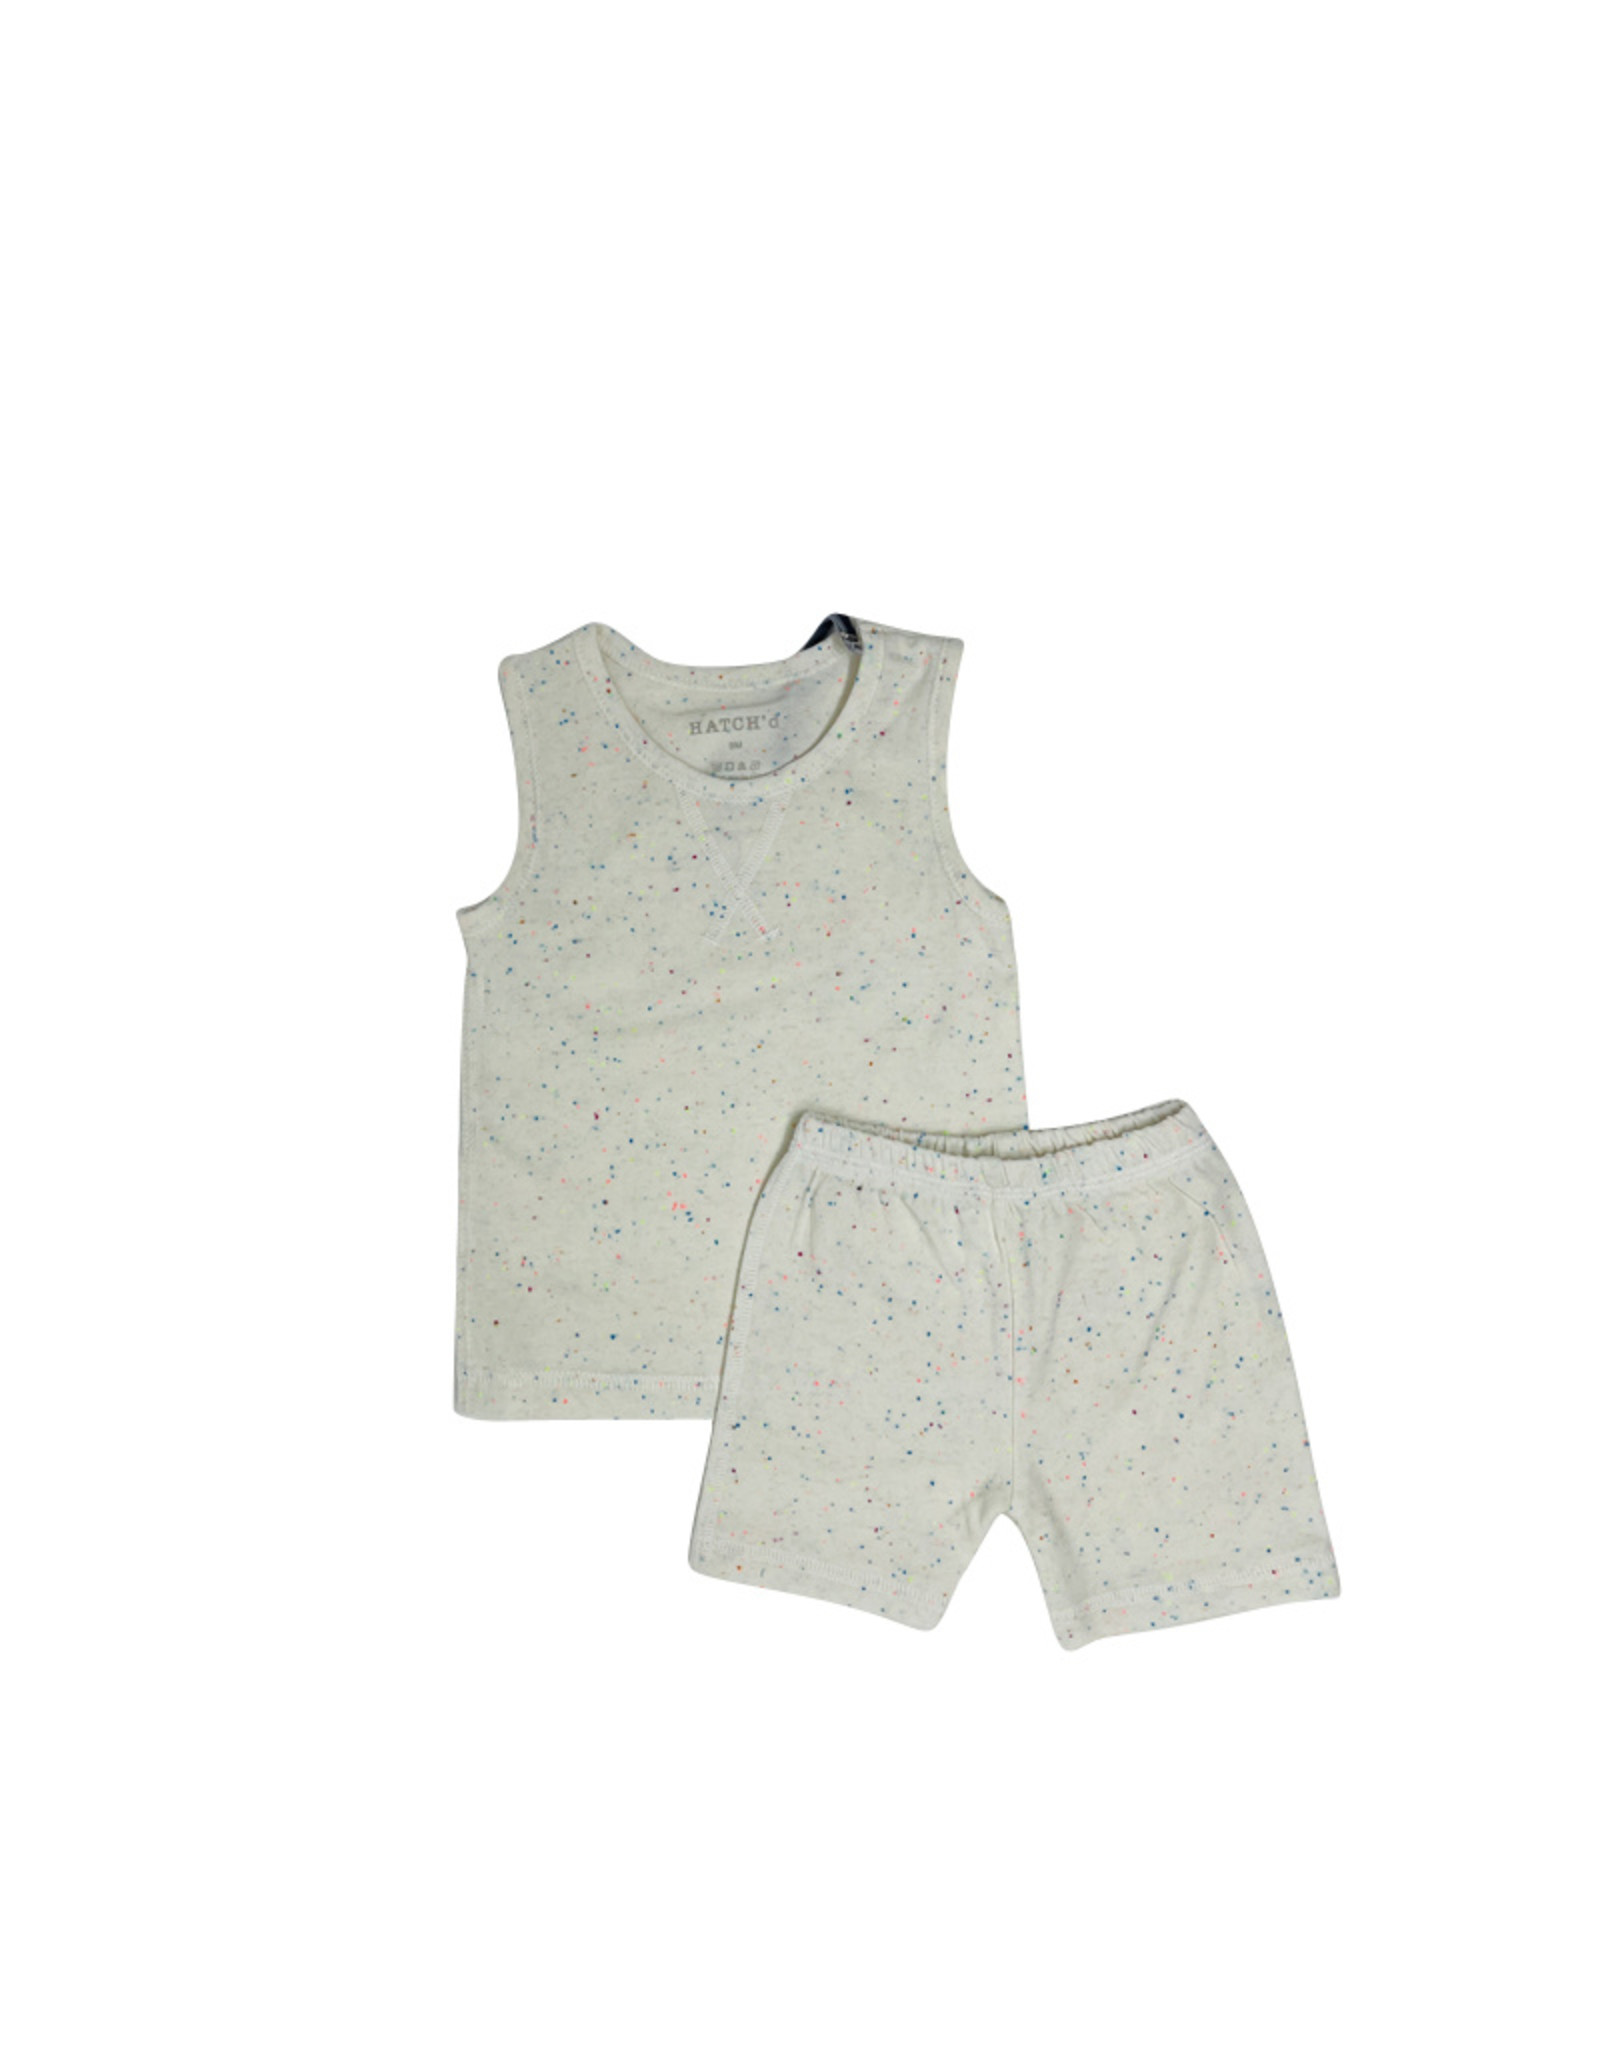 HATCH'd HATCH'D Speckled Set (Tank/Shorts)